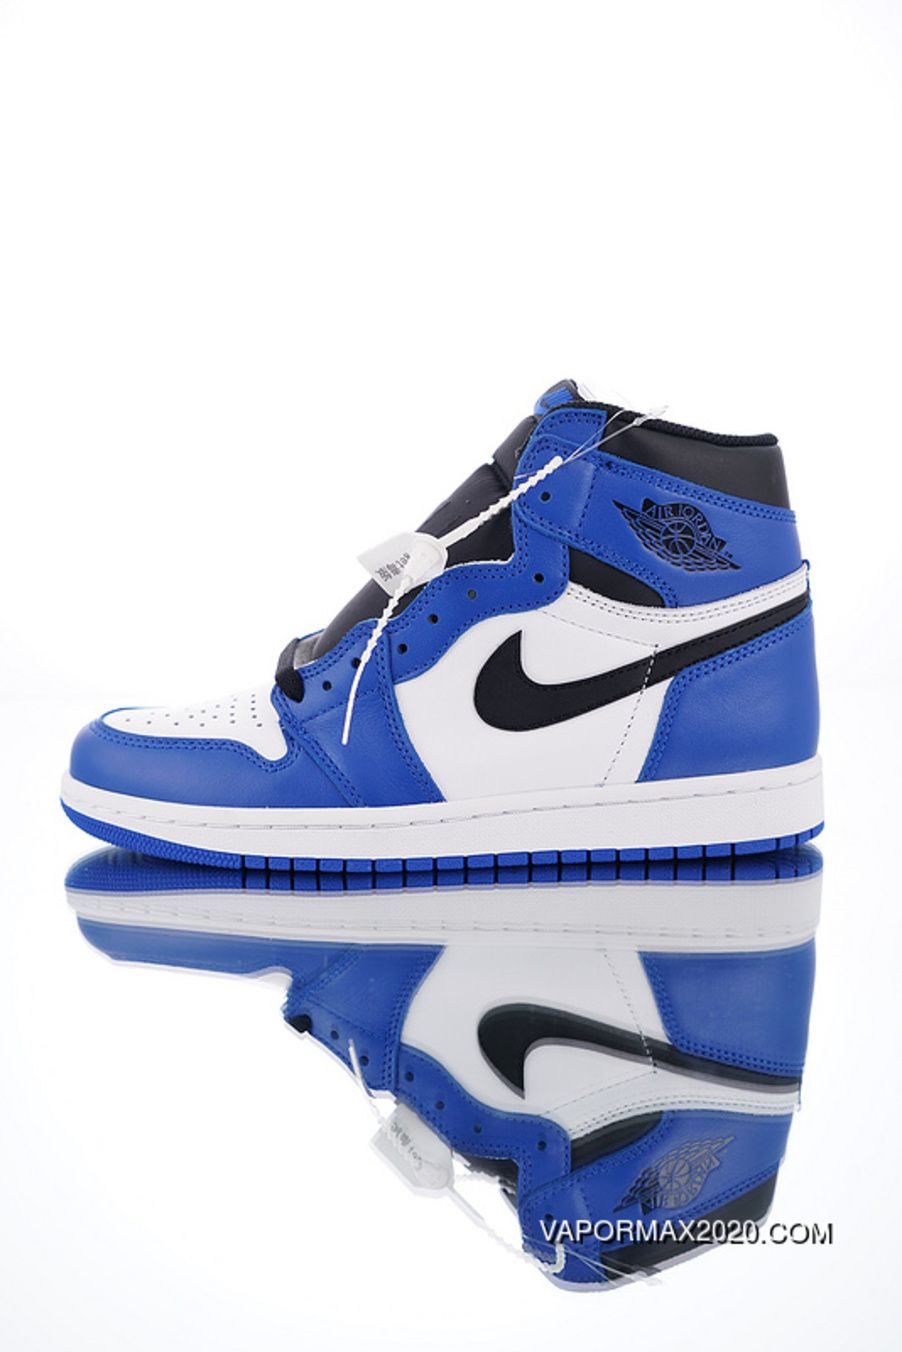 Men Shoes Get Version Nike Air Jordan 1 Retro High Og Game Royal